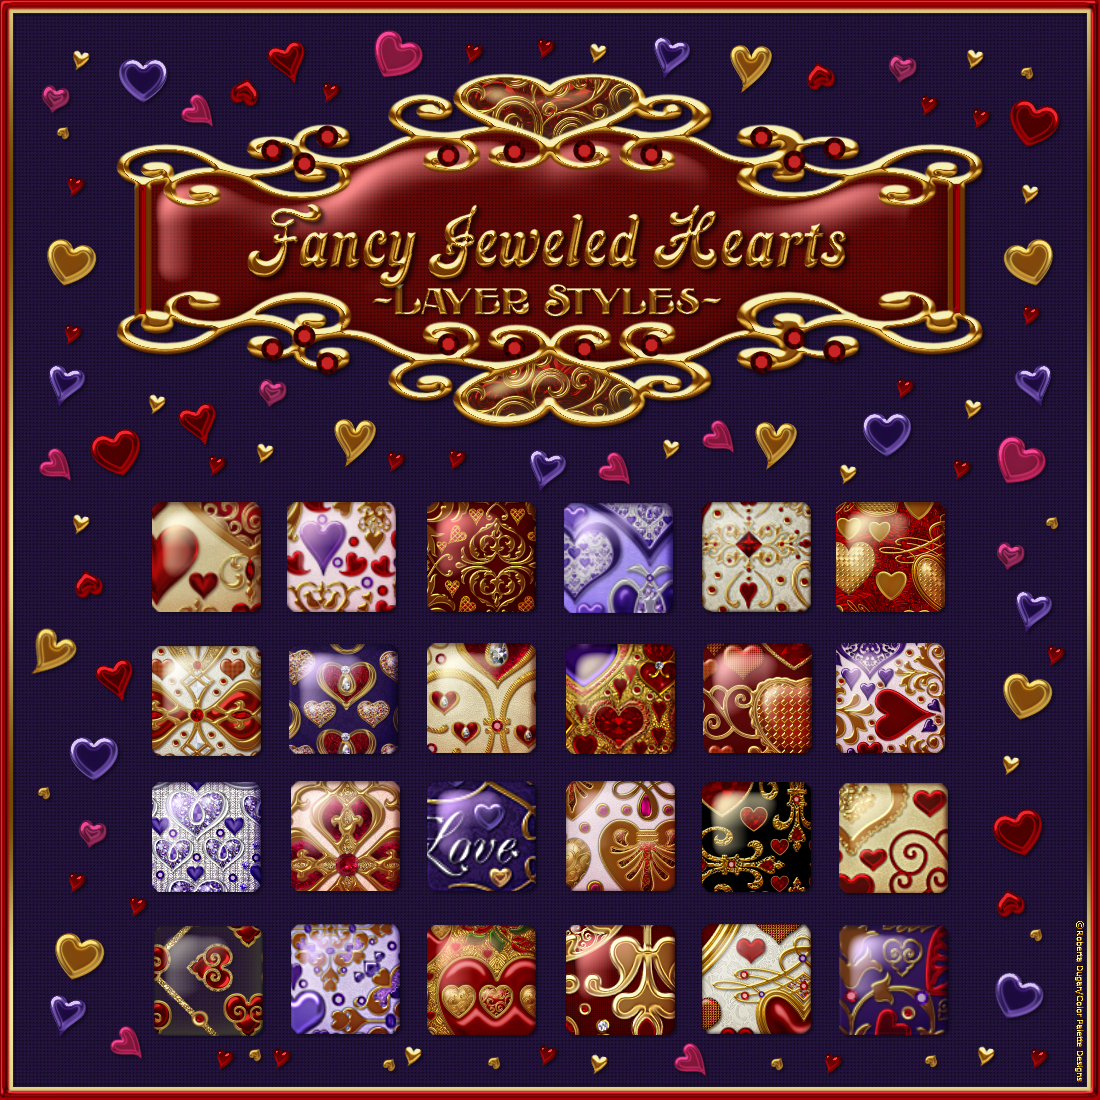 Fancy Jeweled Hearts Layer Styles by fractalartist01